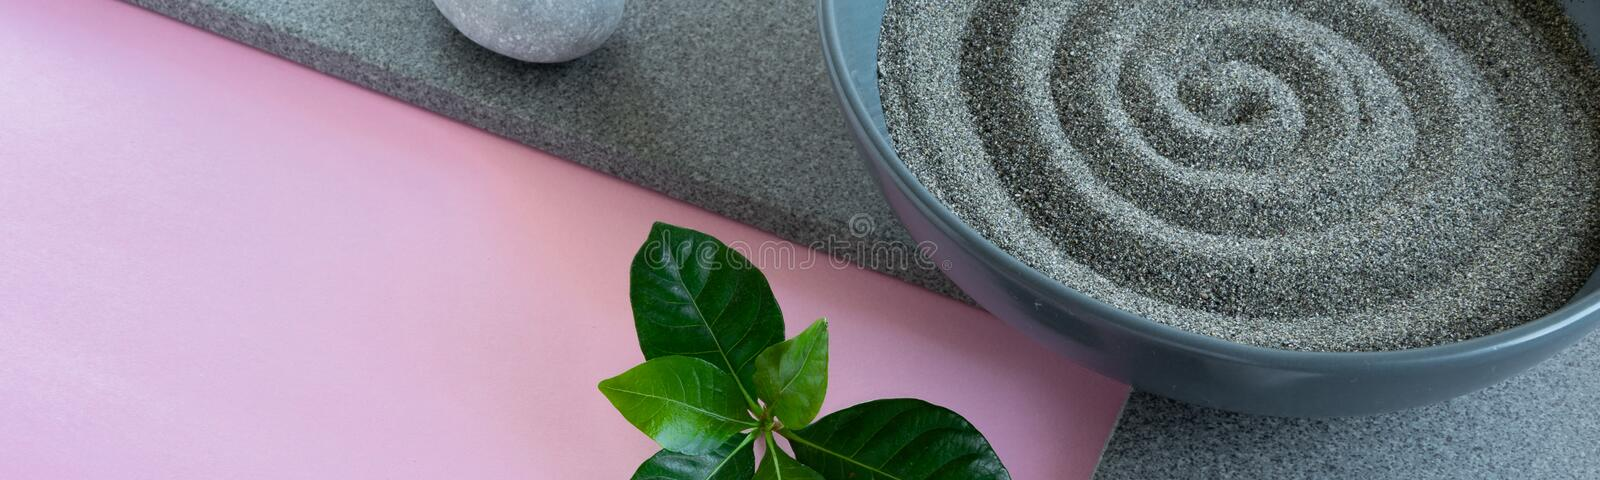 Natural skin care products, relaxing massage time . Healthy remedy. Natural skin care products,  relaxing massage time . Healthy remedy, wellness concepts royalty free stock images